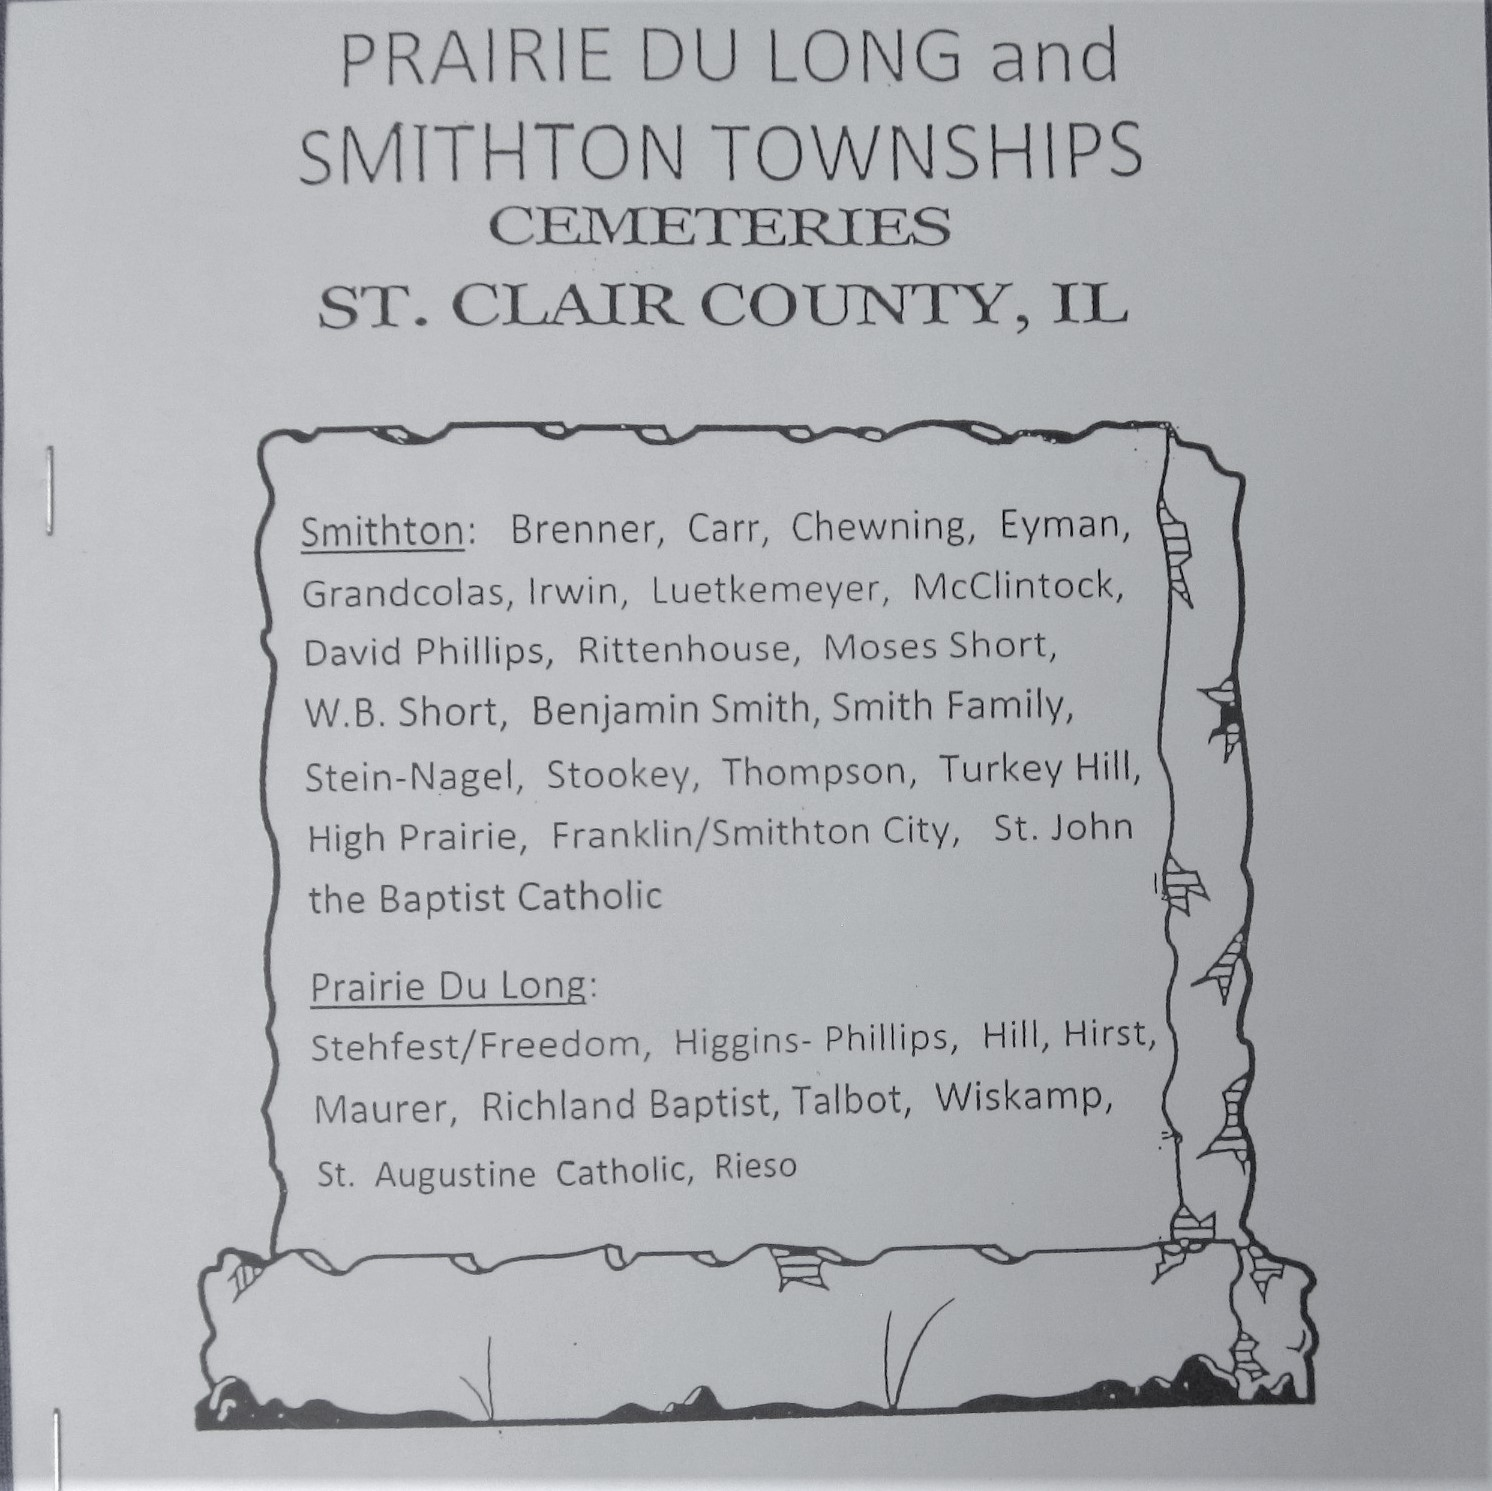 Prairie du Long and Smithton Townships Cemeteries